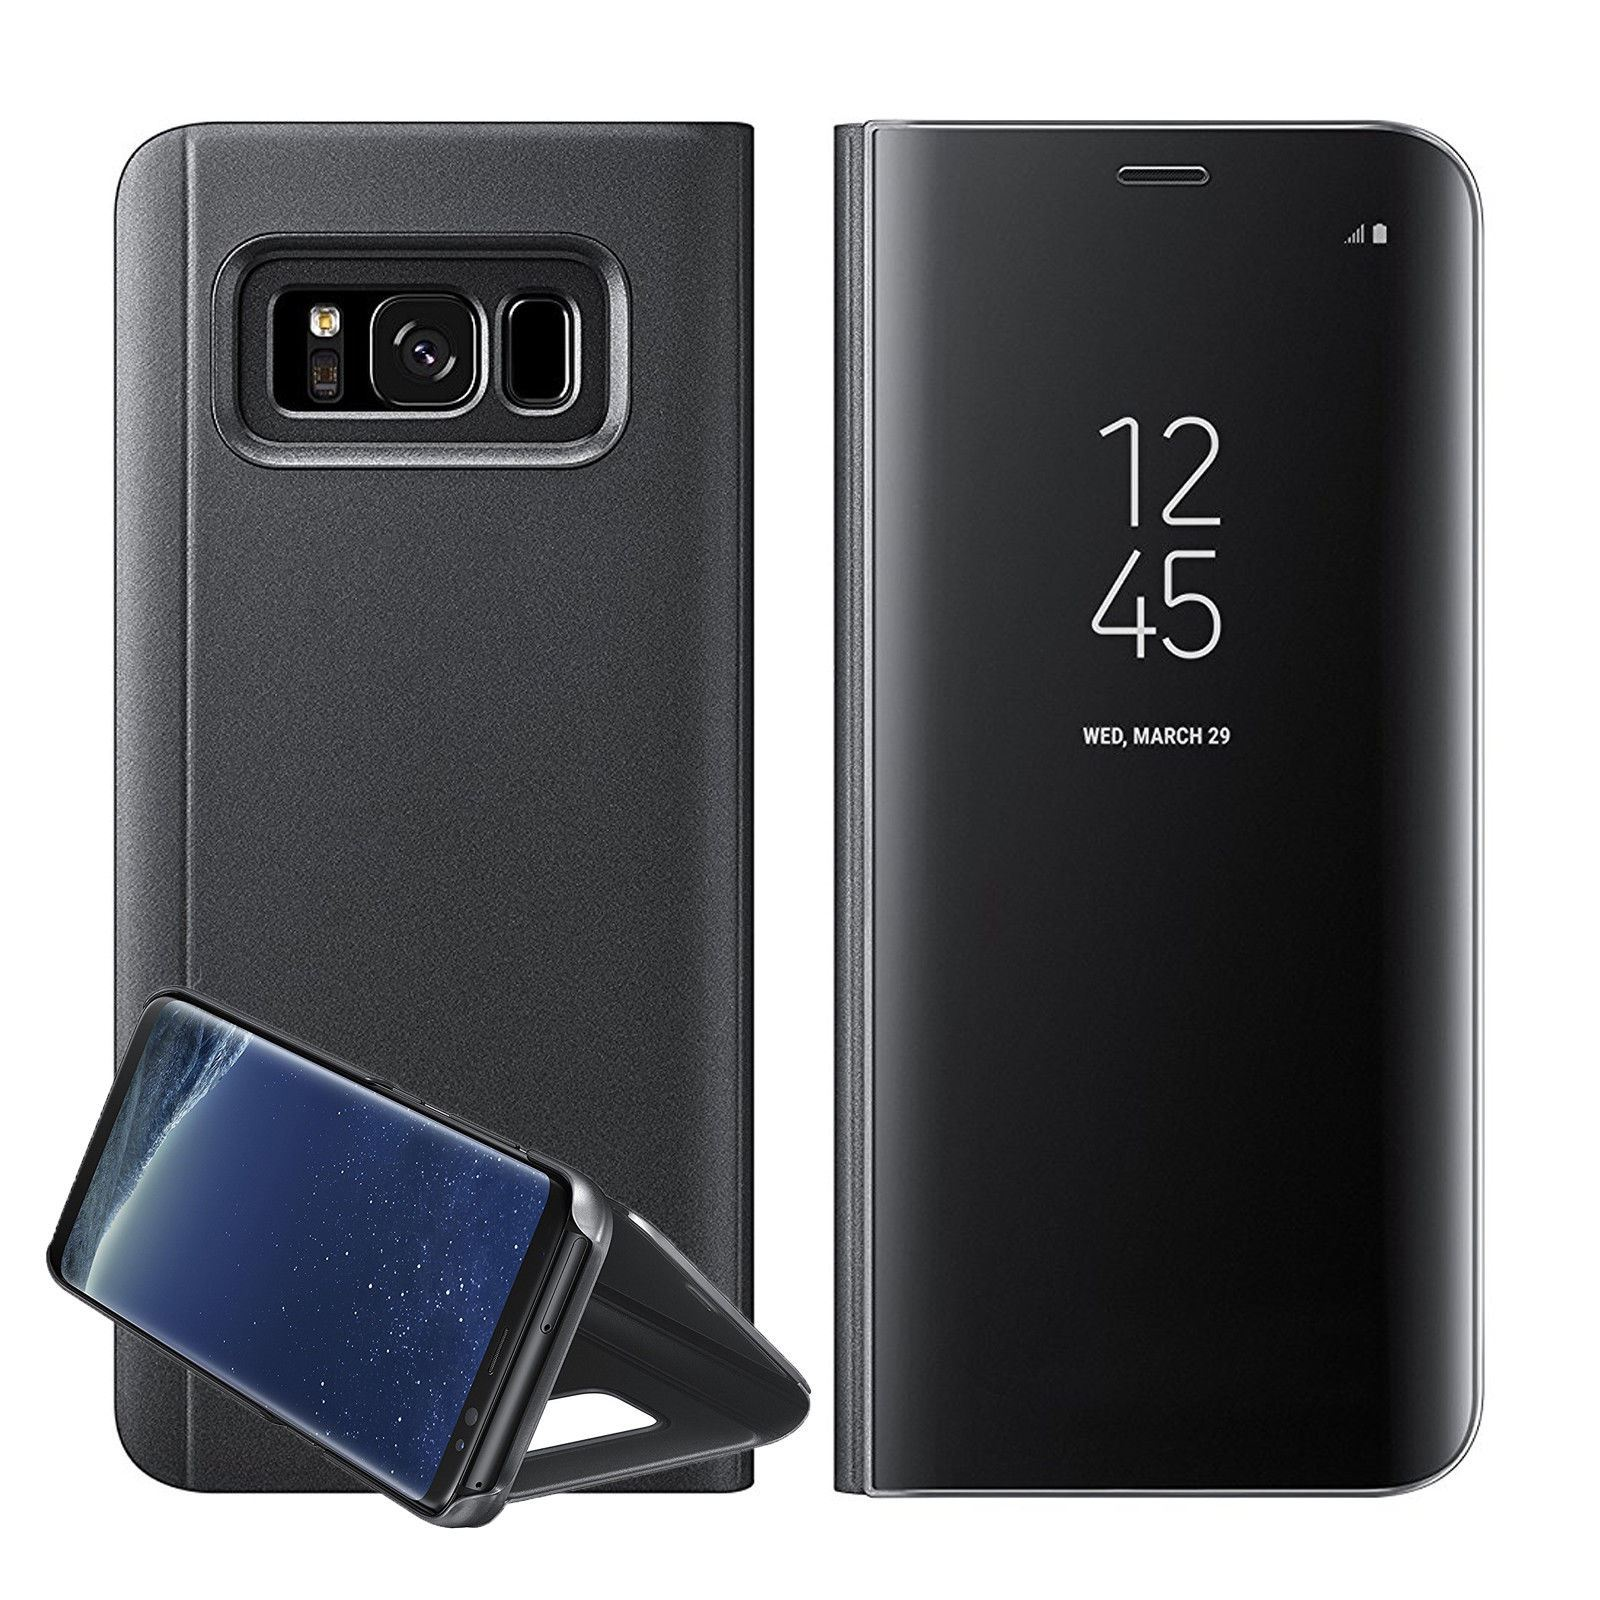 New-Samsung-Galaxy-S8-S9-S10-Smart-View-Mirror-Leather-Flip-Stand-Case-Cover thumbnail 18